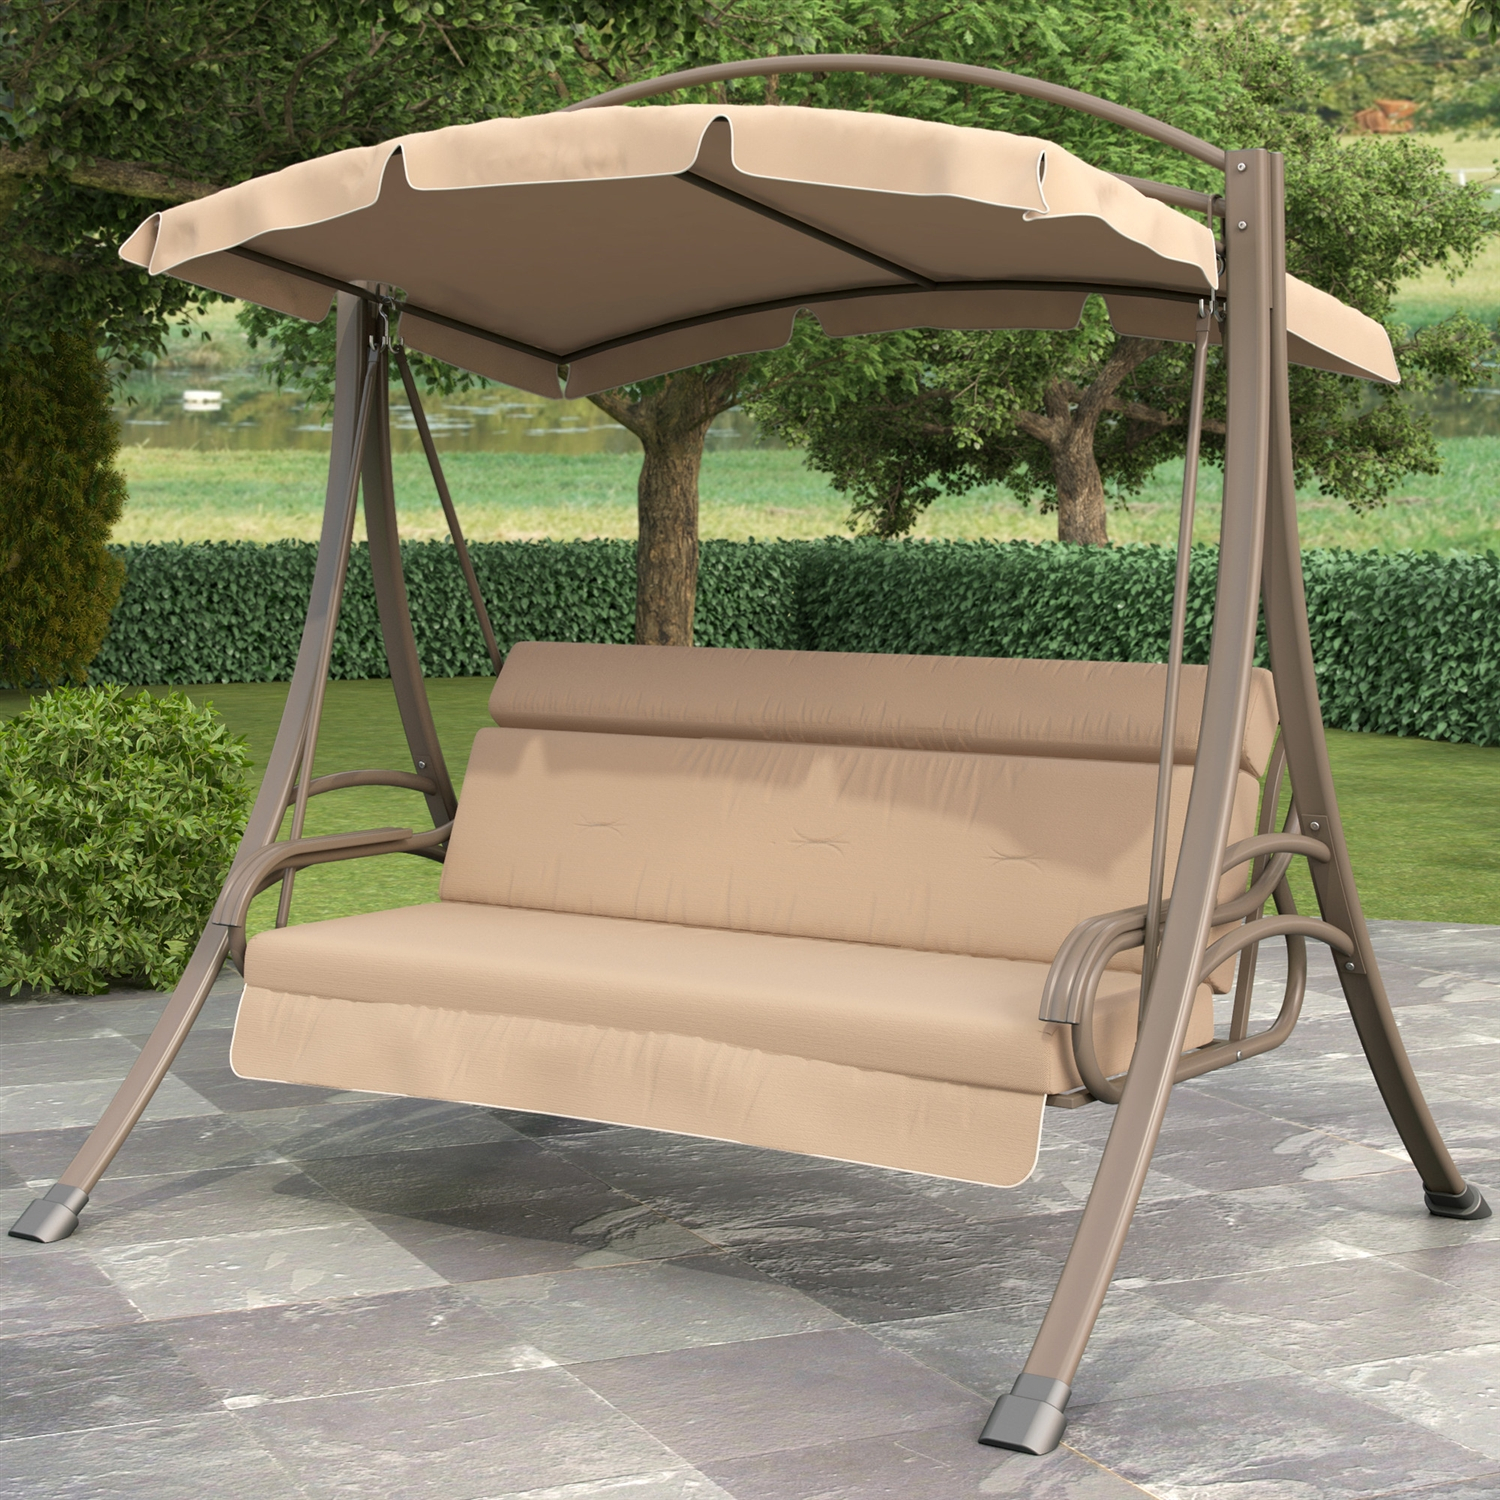 Person Outdoor Porch Swing With Canopy Beige Tan Brown Patio